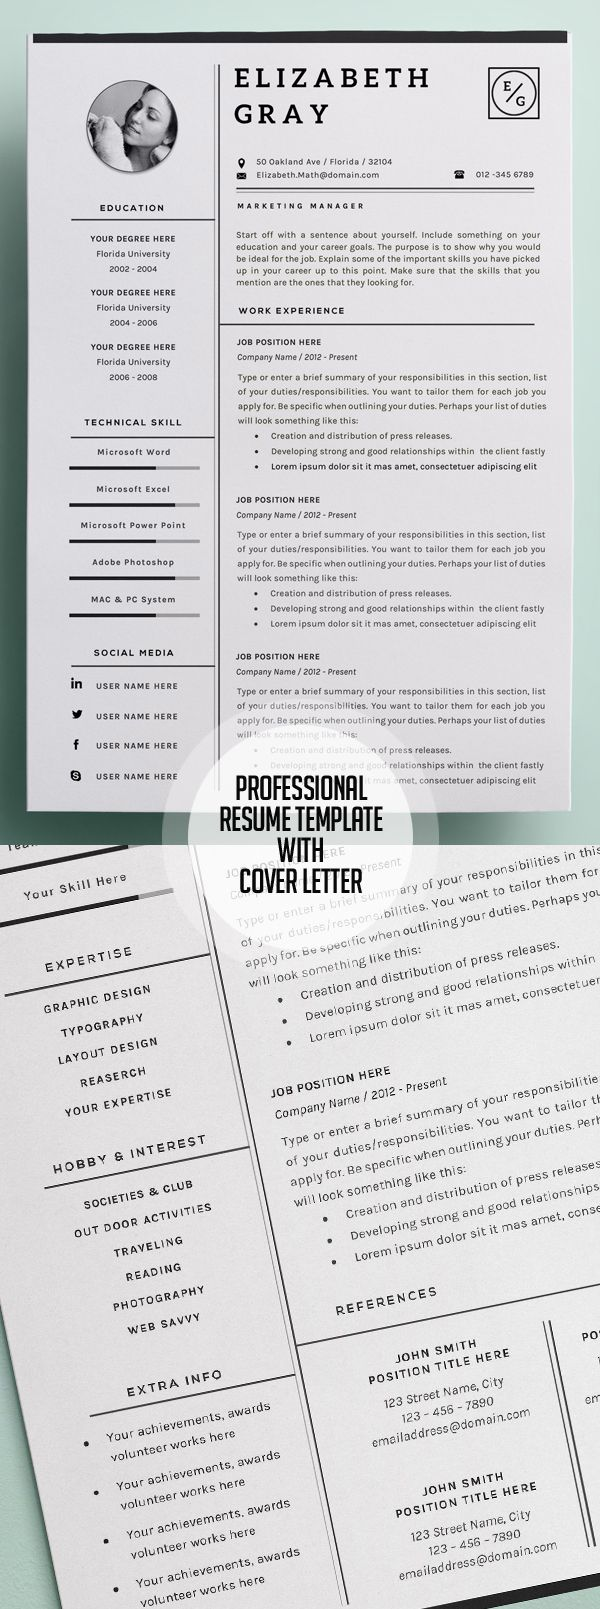 Opposenewapstandardsus  Sweet  Resume Ideas On Pinterest  Resume Resume Templates And  With Extraordinary Professional And Modern Resume Template With Page Cover Cvtemplate With Comely Resume Accounting Also Resume  Pages In Addition Simple Sample Resume And Your Resume As Well As Resume Examples For High School Students Additionally Resume Writing Jobs From Pinterestcom With Opposenewapstandardsus  Extraordinary  Resume Ideas On Pinterest  Resume Resume Templates And  With Comely Professional And Modern Resume Template With Page Cover Cvtemplate And Sweet Resume Accounting Also Resume  Pages In Addition Simple Sample Resume From Pinterestcom